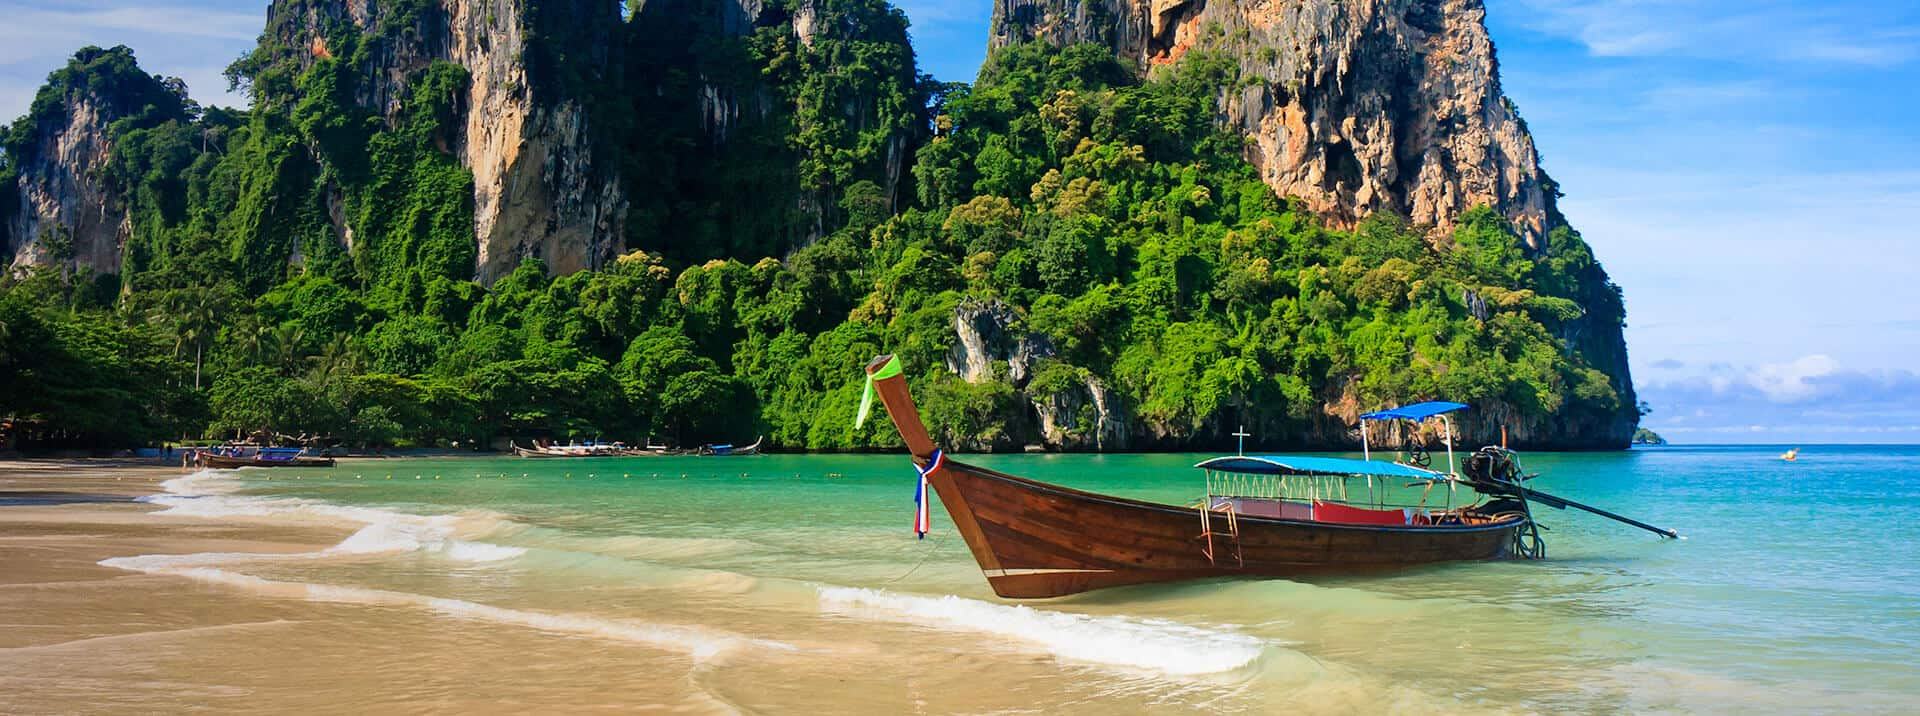 Featured-Image_Phuket-Thailand_1920x716-min